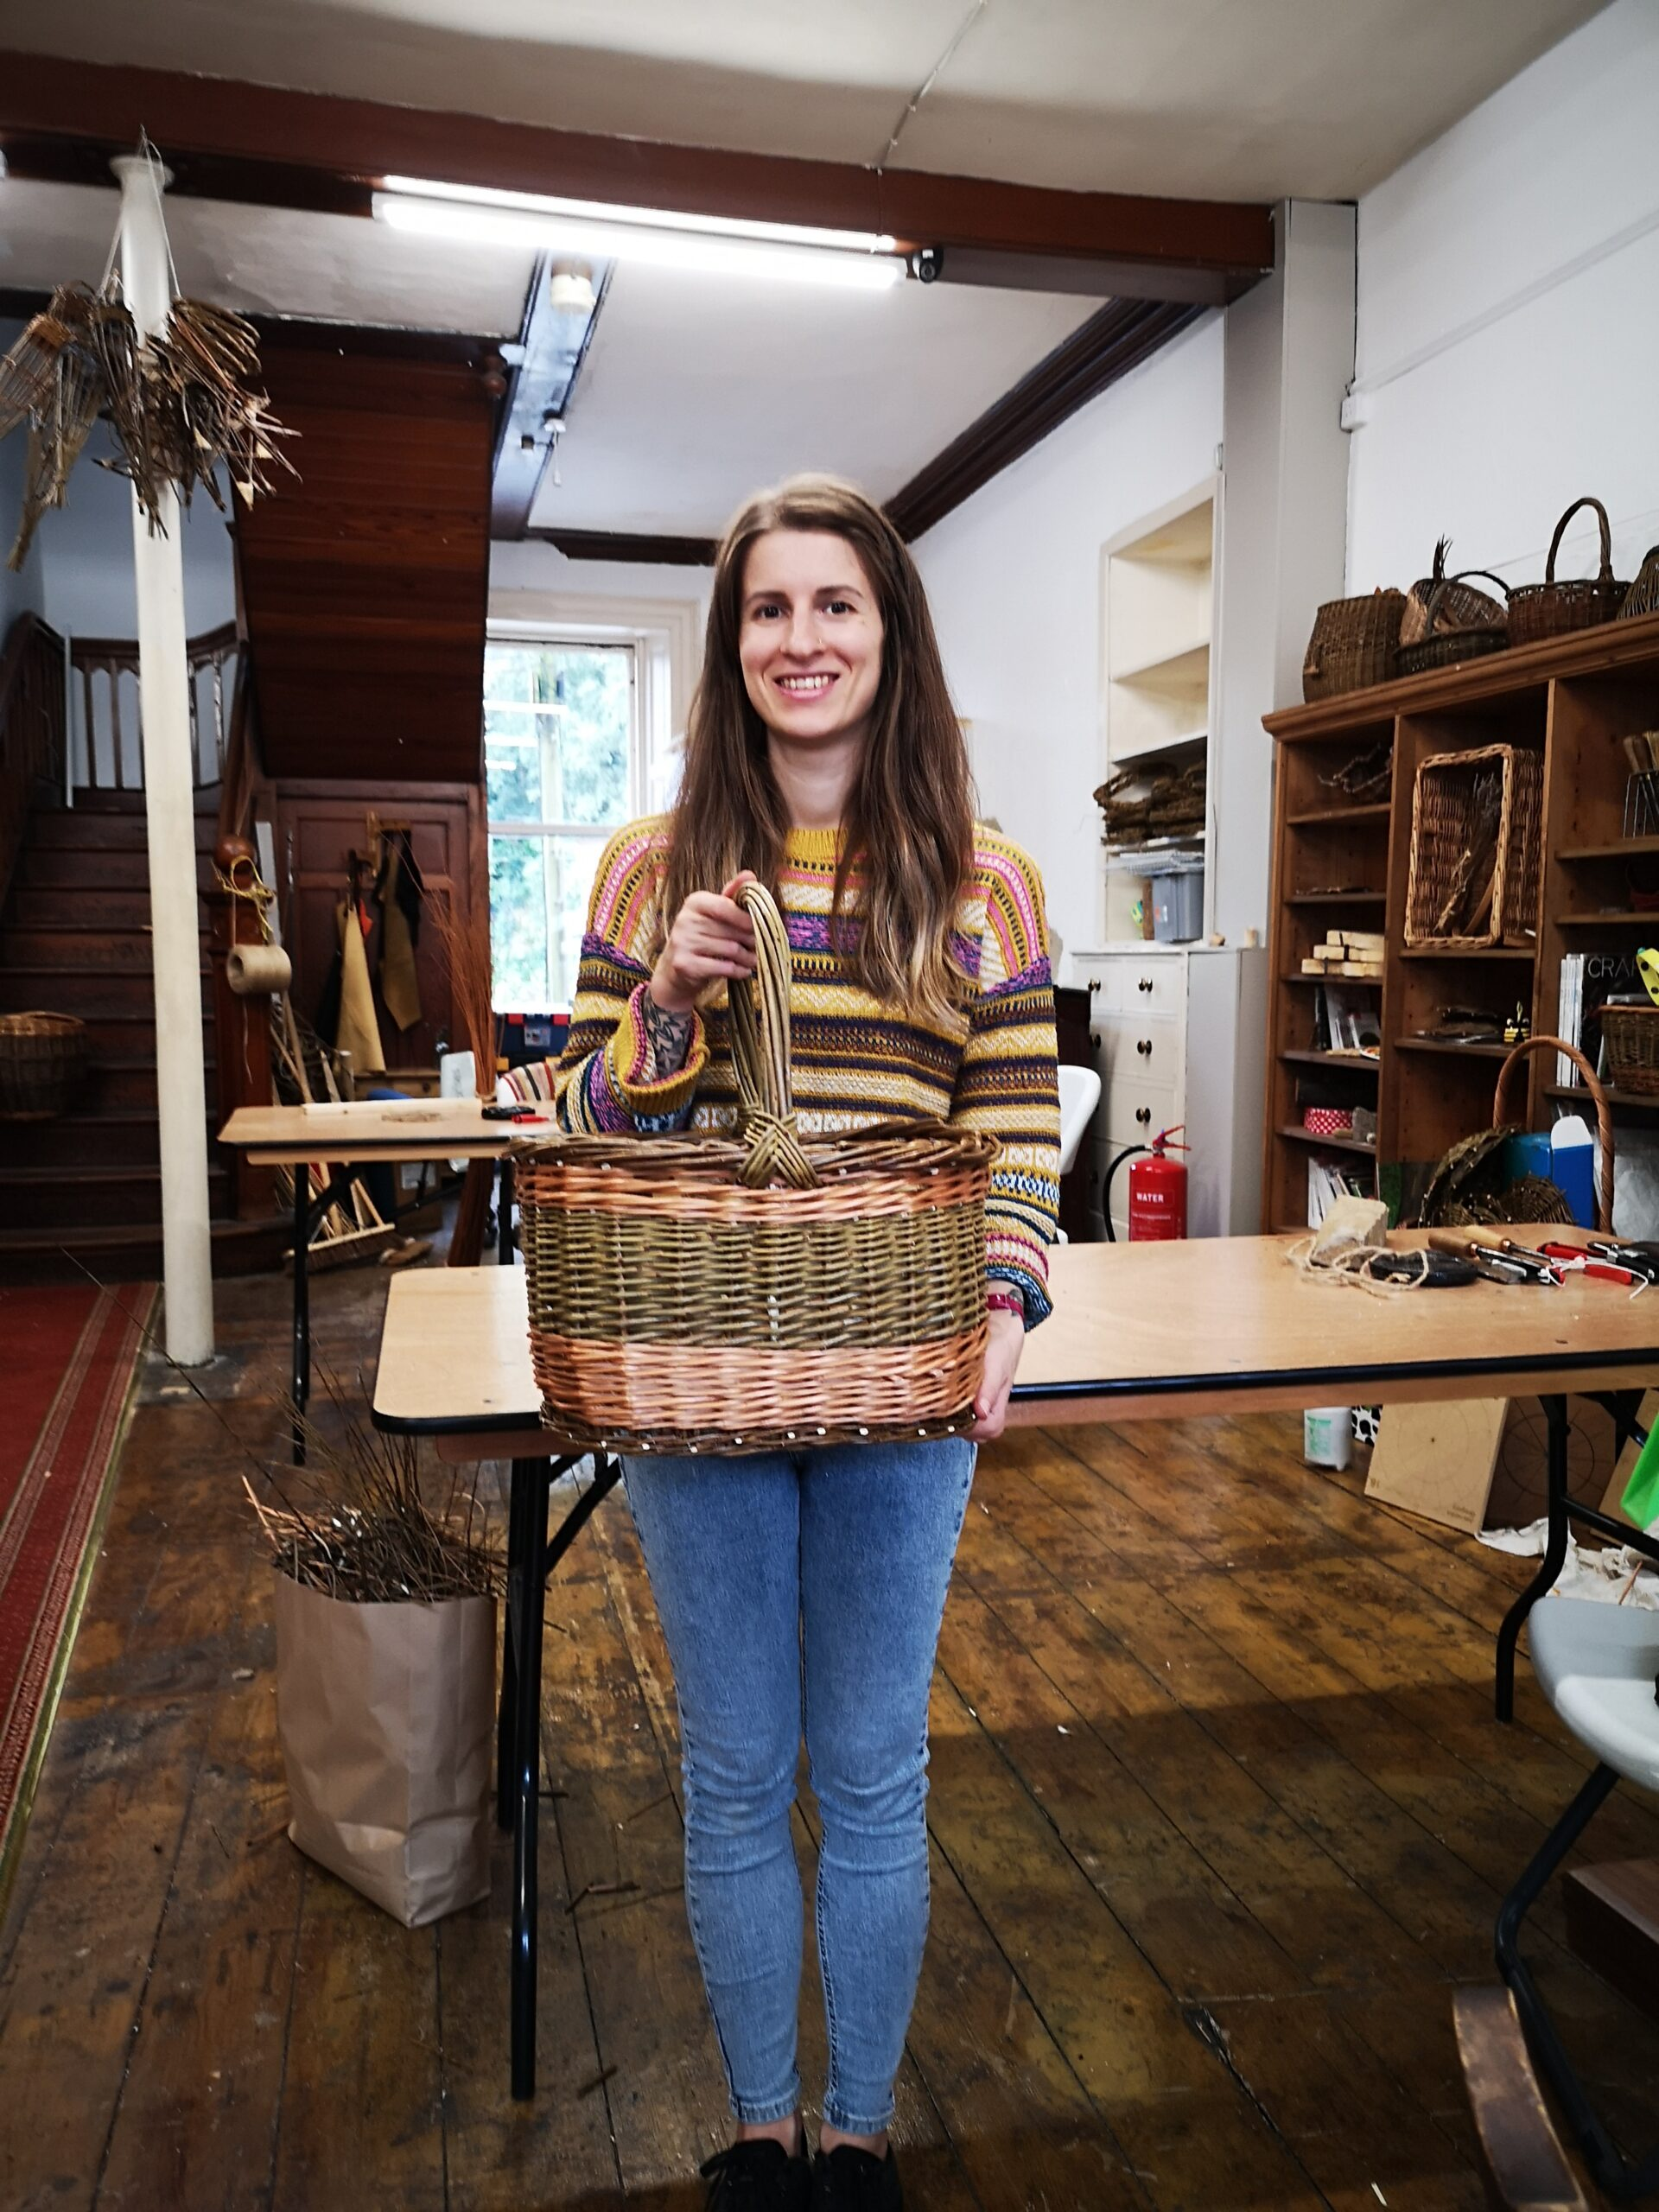 Oval-shopper-basket-weaving-students-work-creative-with-nature